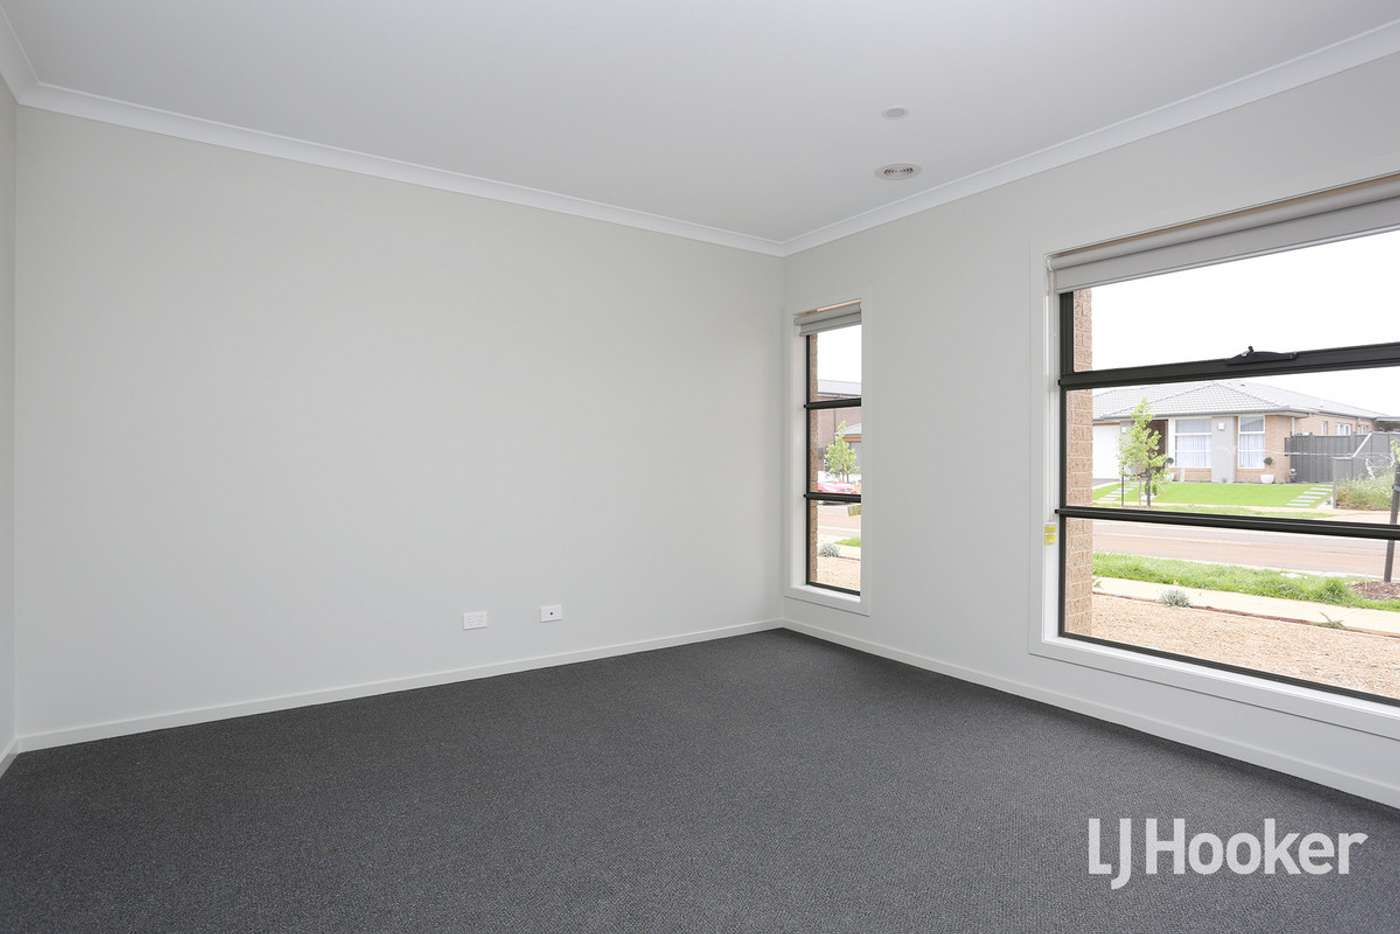 Sixth view of Homely house listing, 5 Wimbeldon Boulevard, Strathtulloh VIC 3338